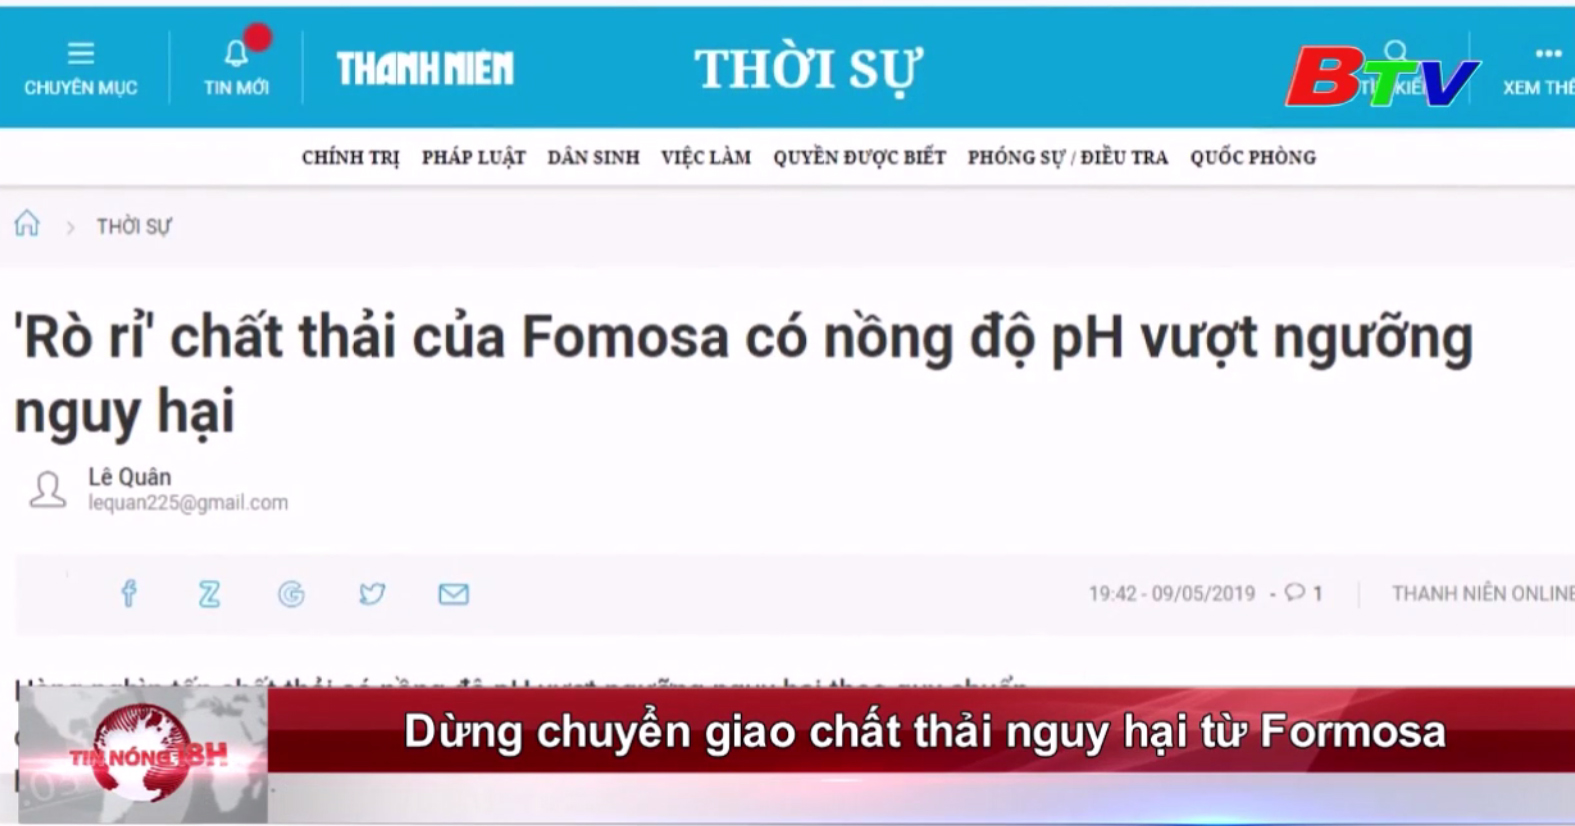 Dừng chuyển giao chất thải nguy hại từ Formosa